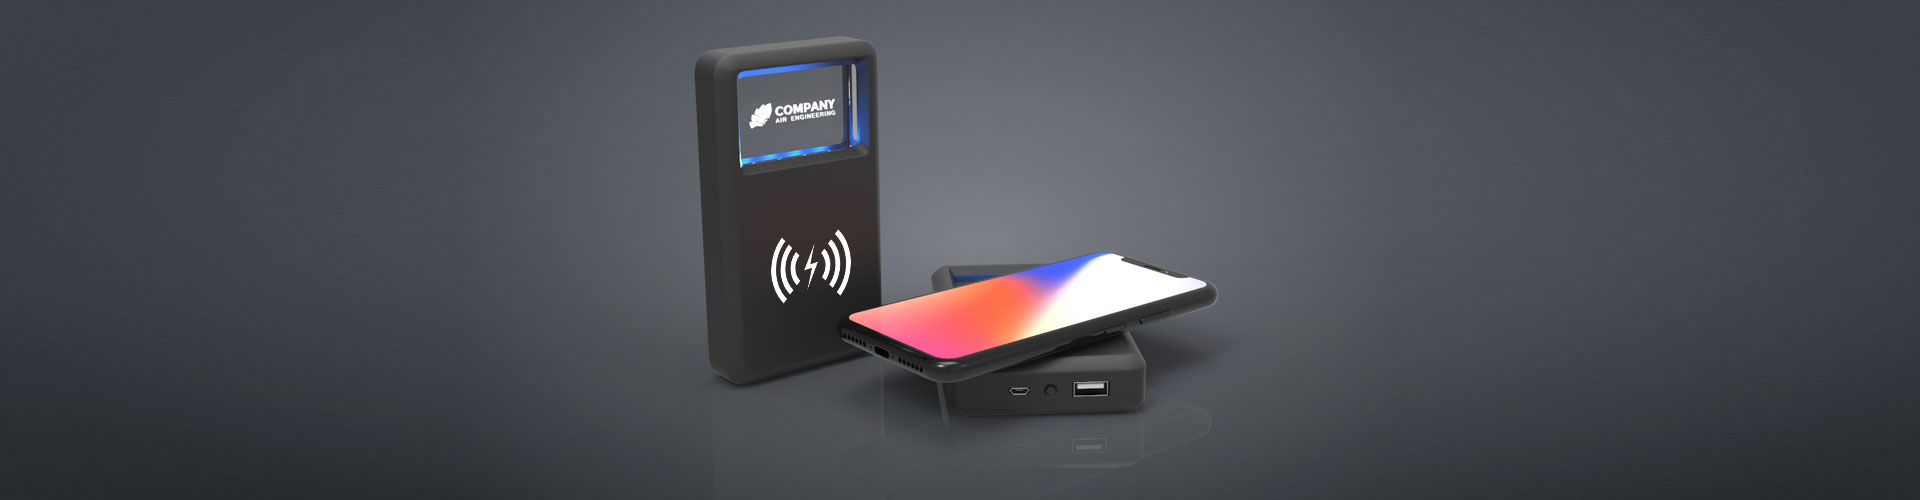 Crystal Powerbank charger 02 - Wireless Charger TO GO